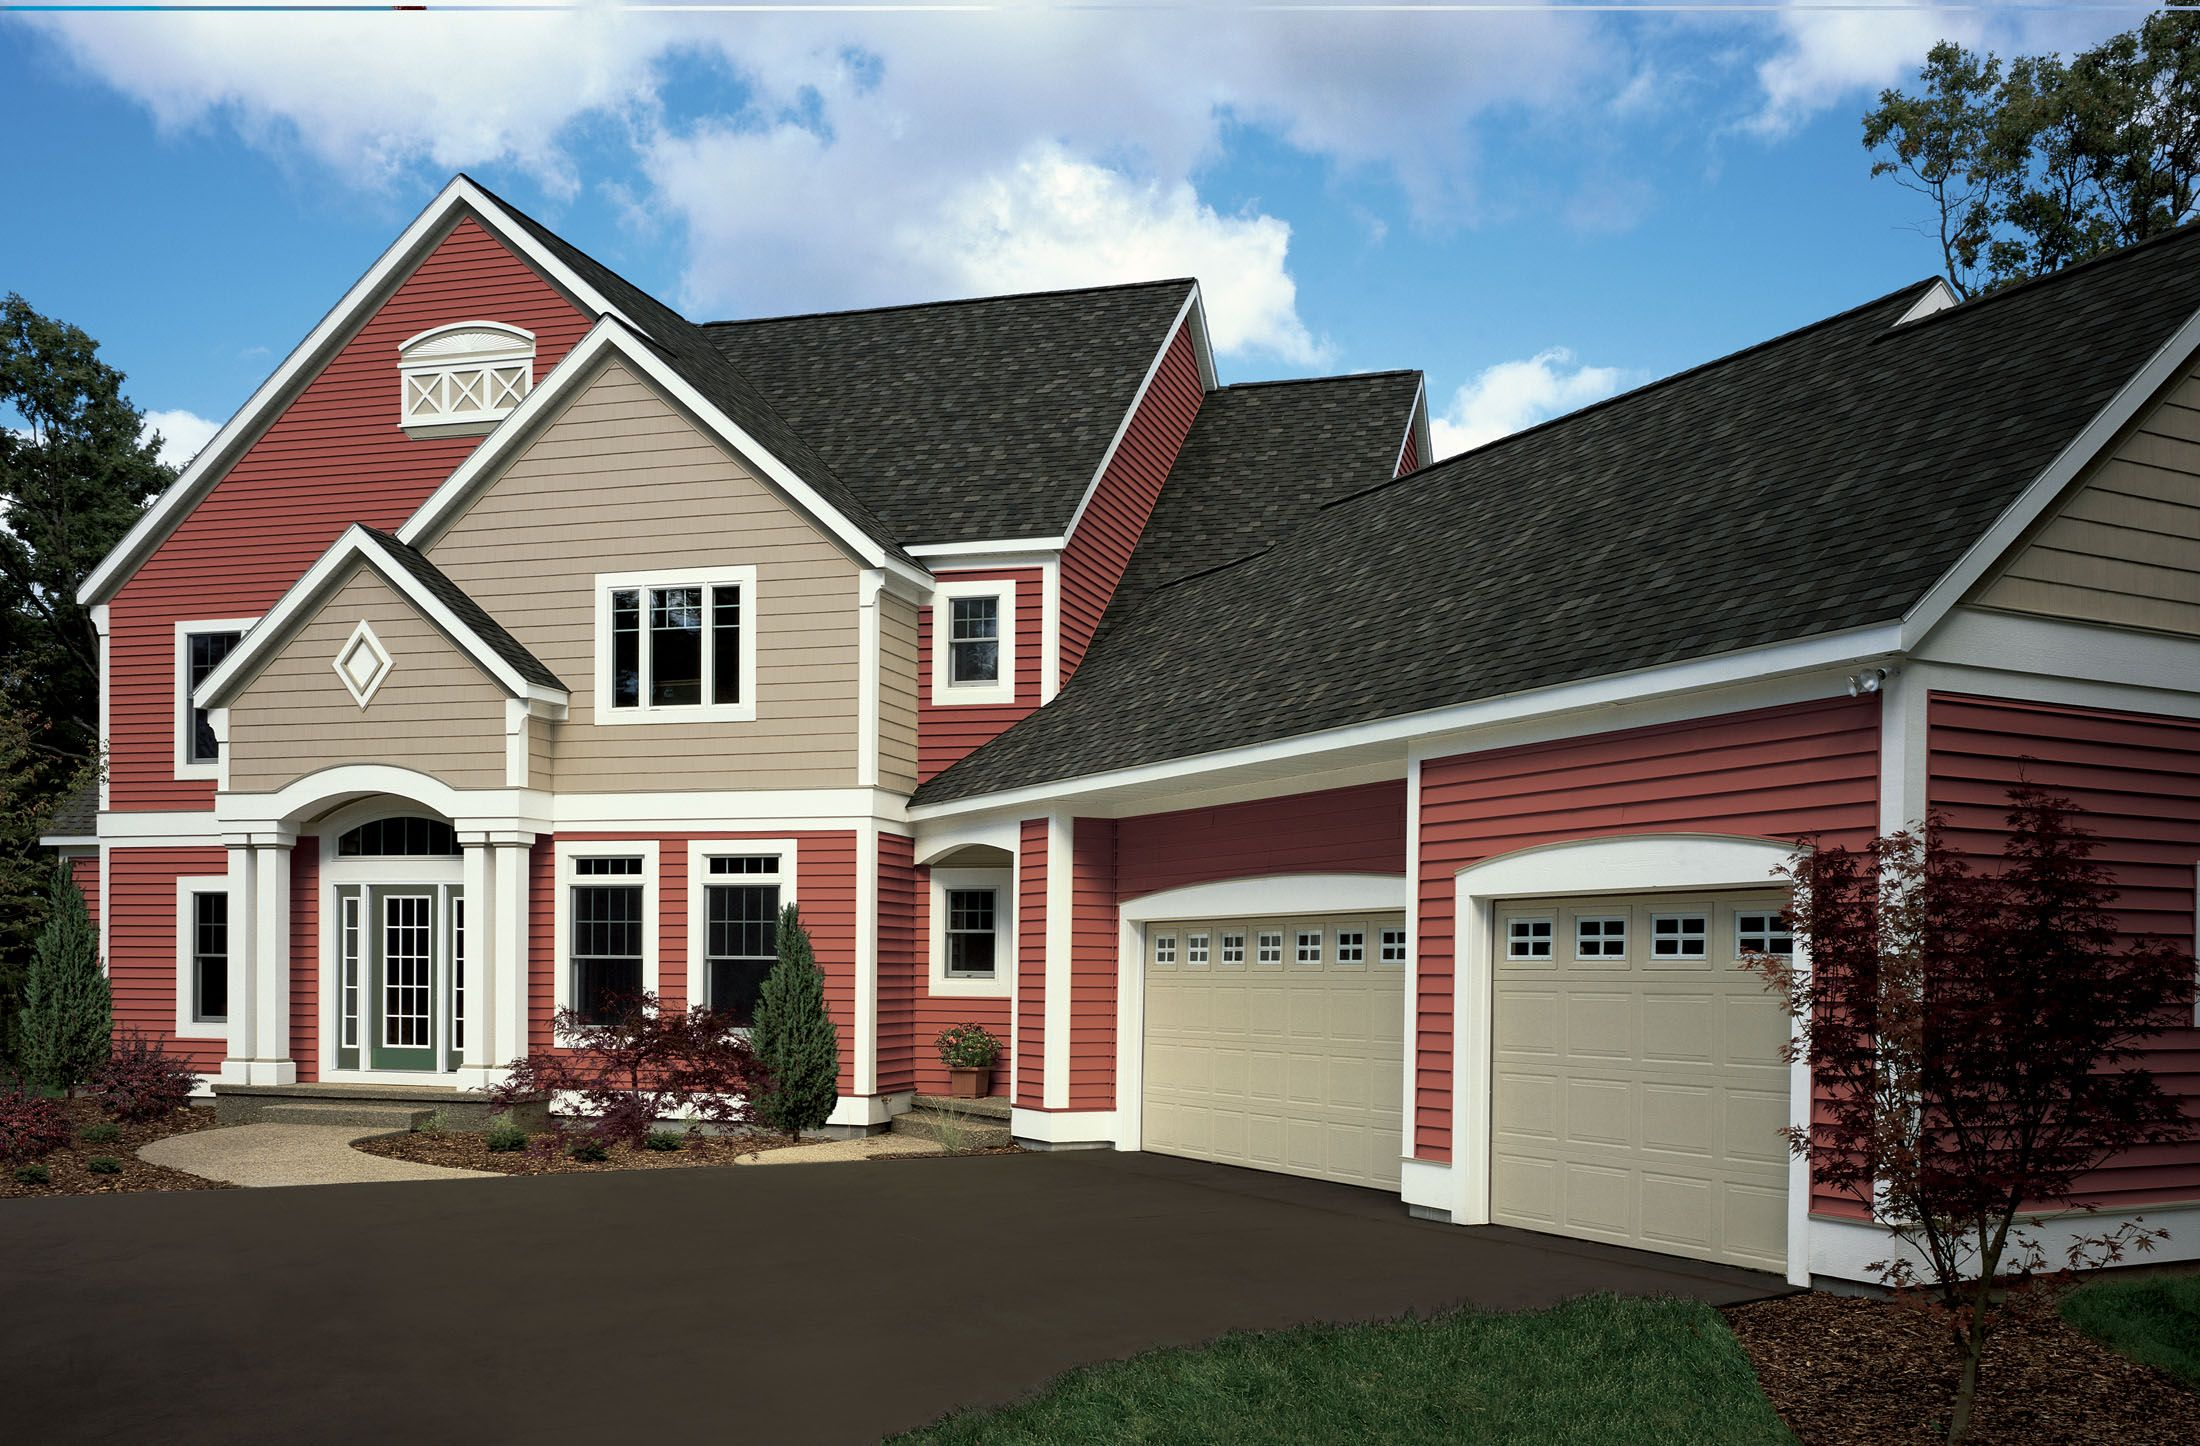 Selecting Vinyl Siding Colors Can Be A Bit Confusing With So Many